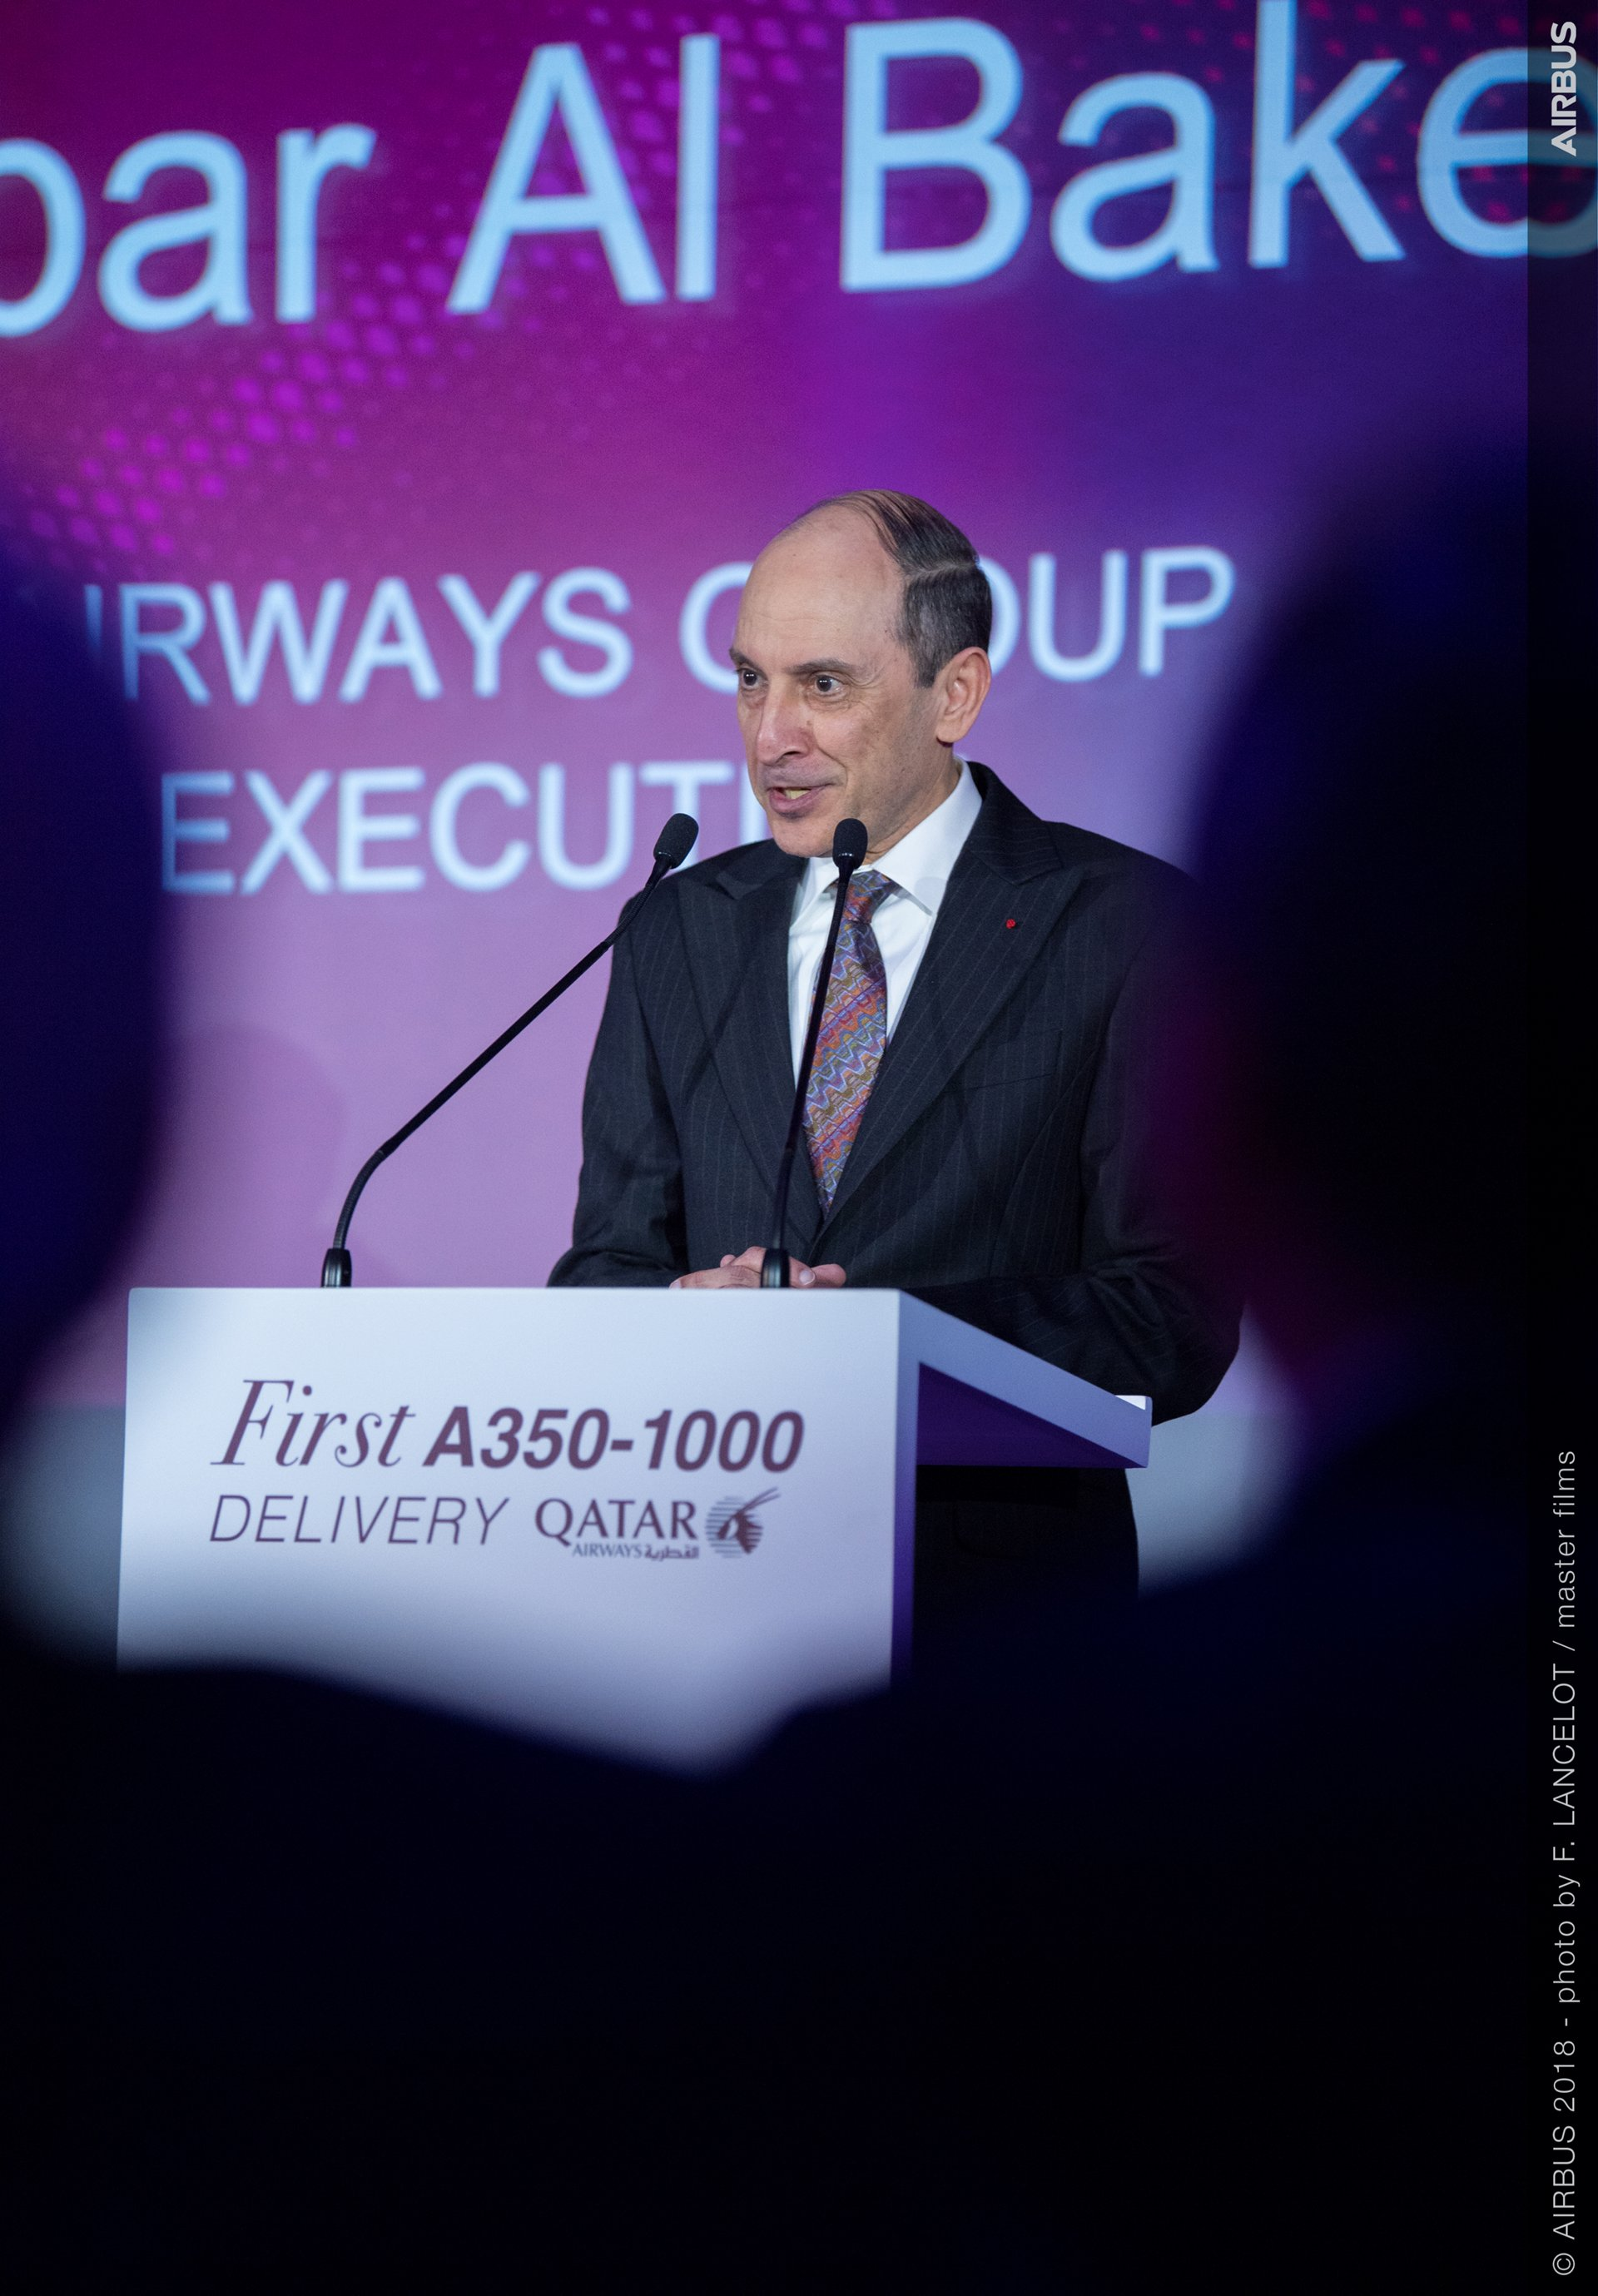 Airbus delivers first A350-1000 to Qatar Airways – 16